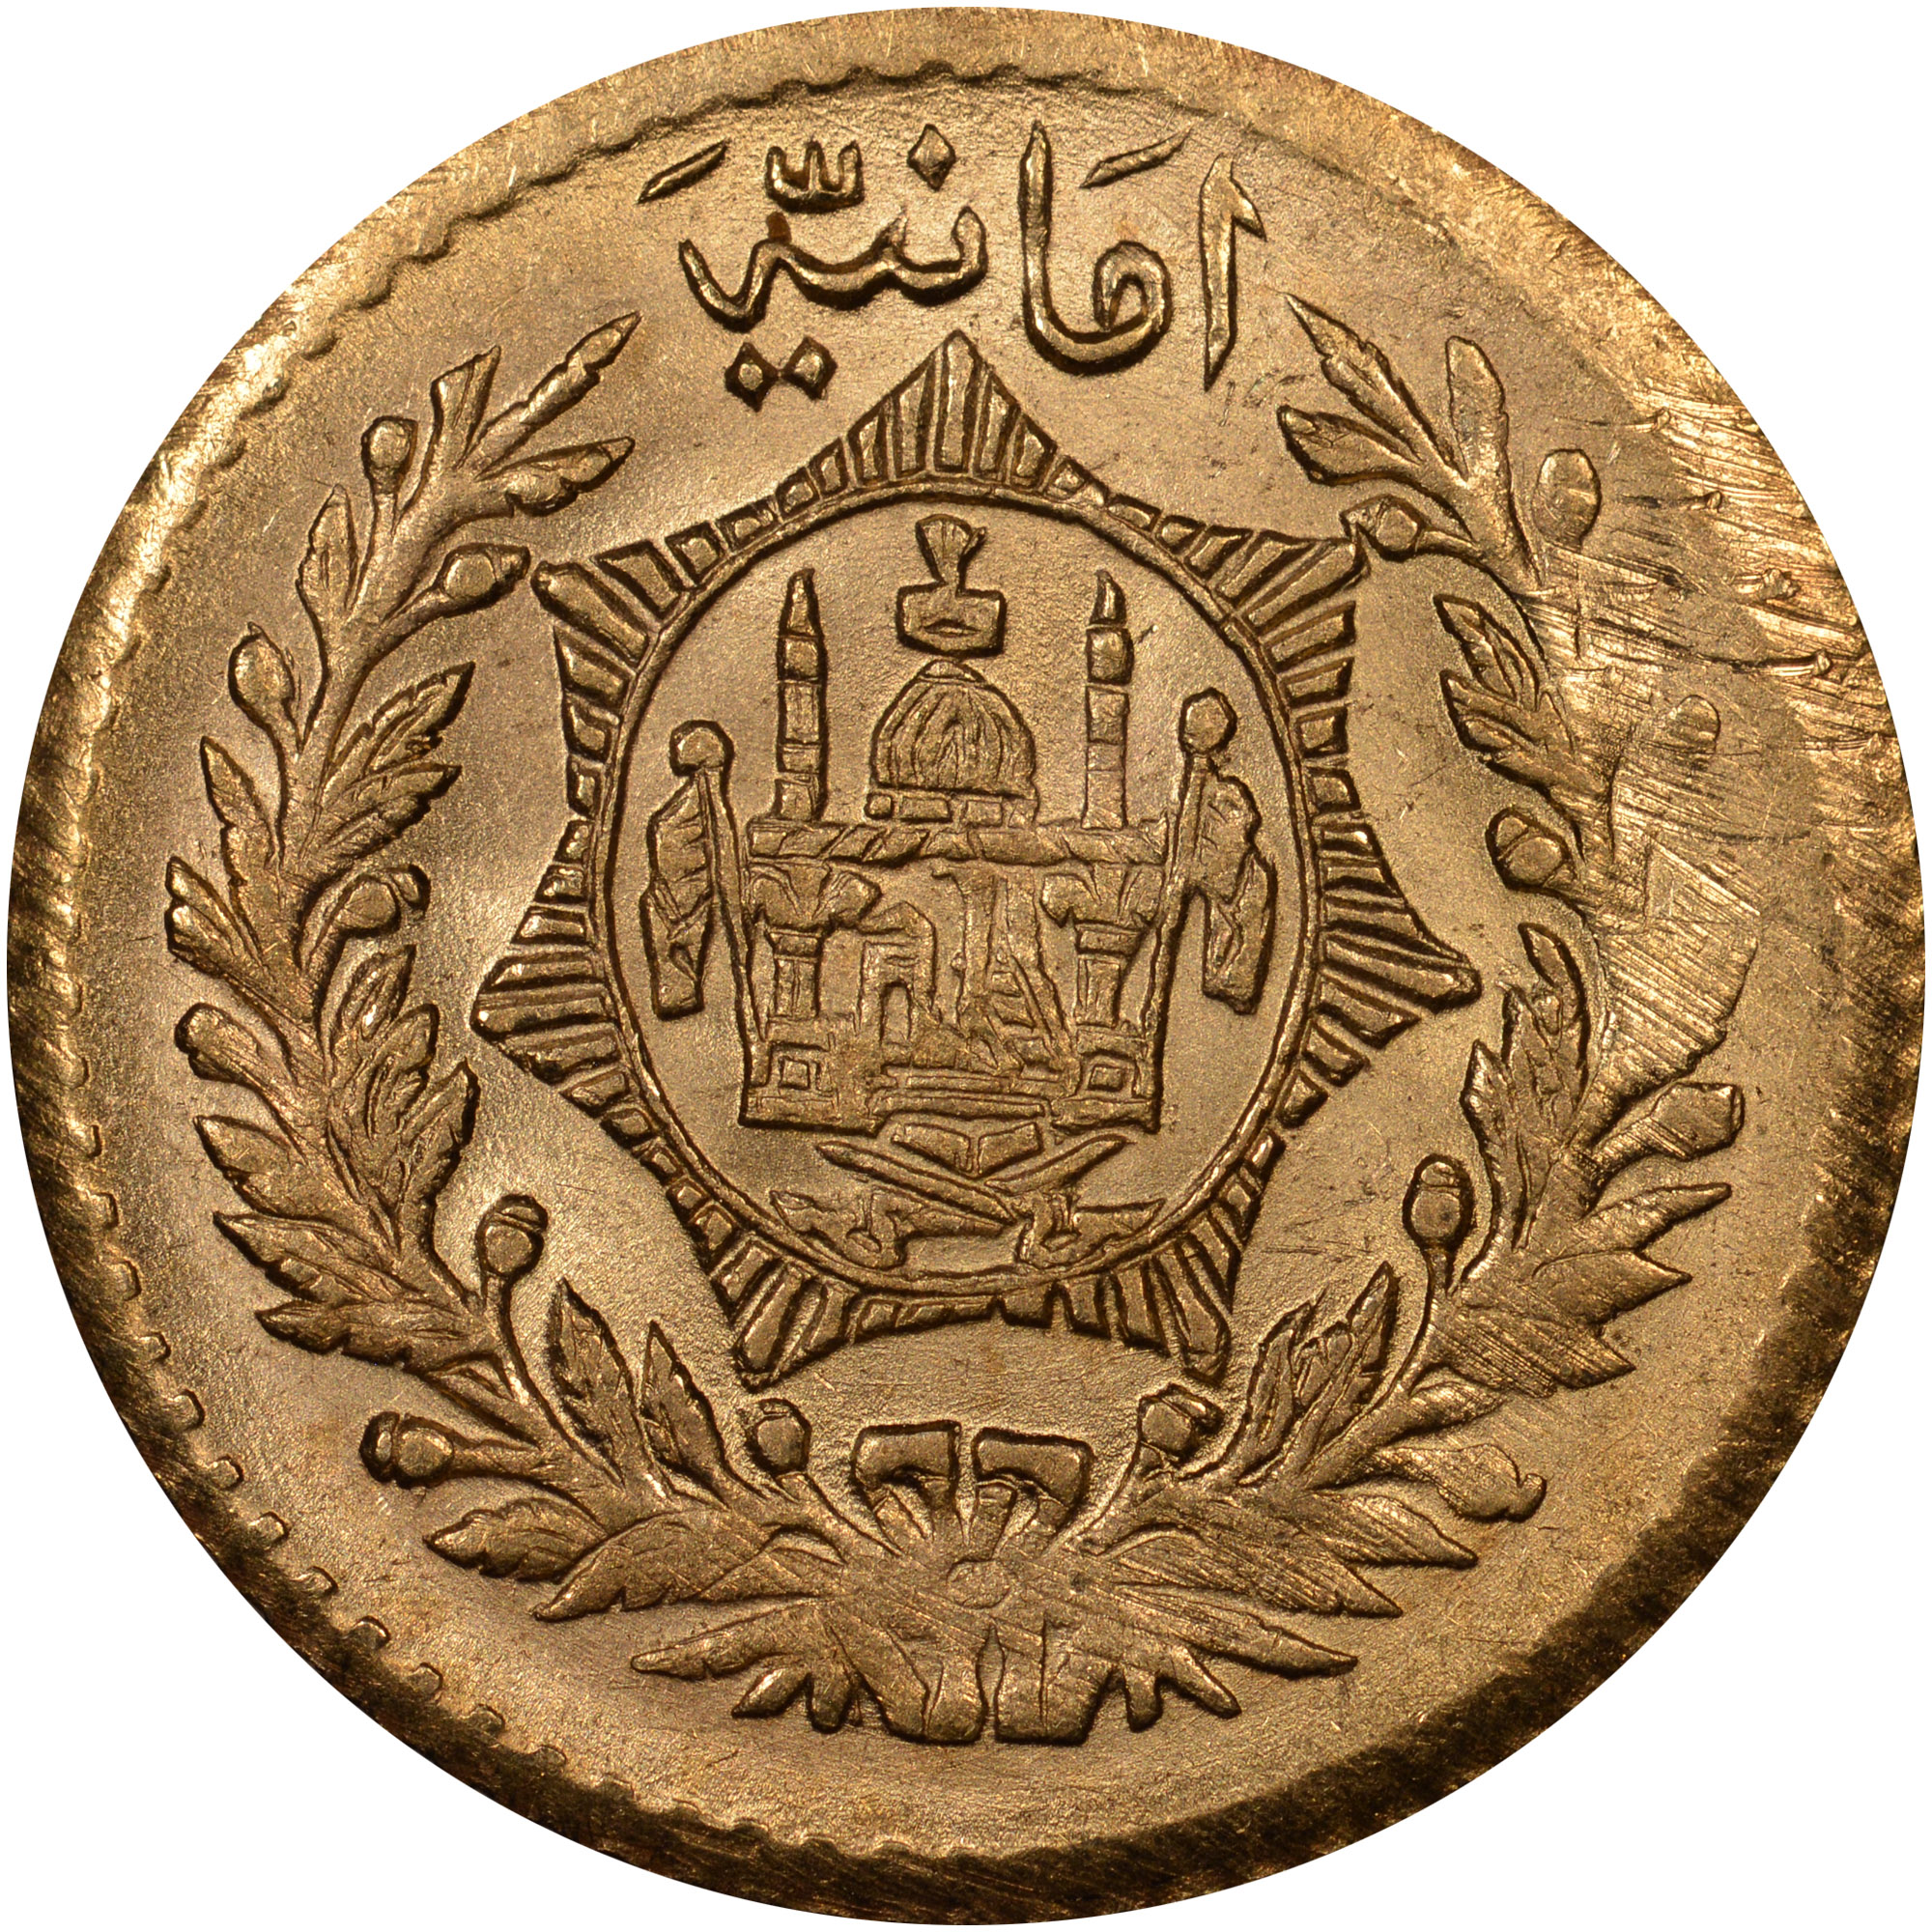 1299 (1920) Afghanistan 1/2 Amani, 5 Rupees obverse